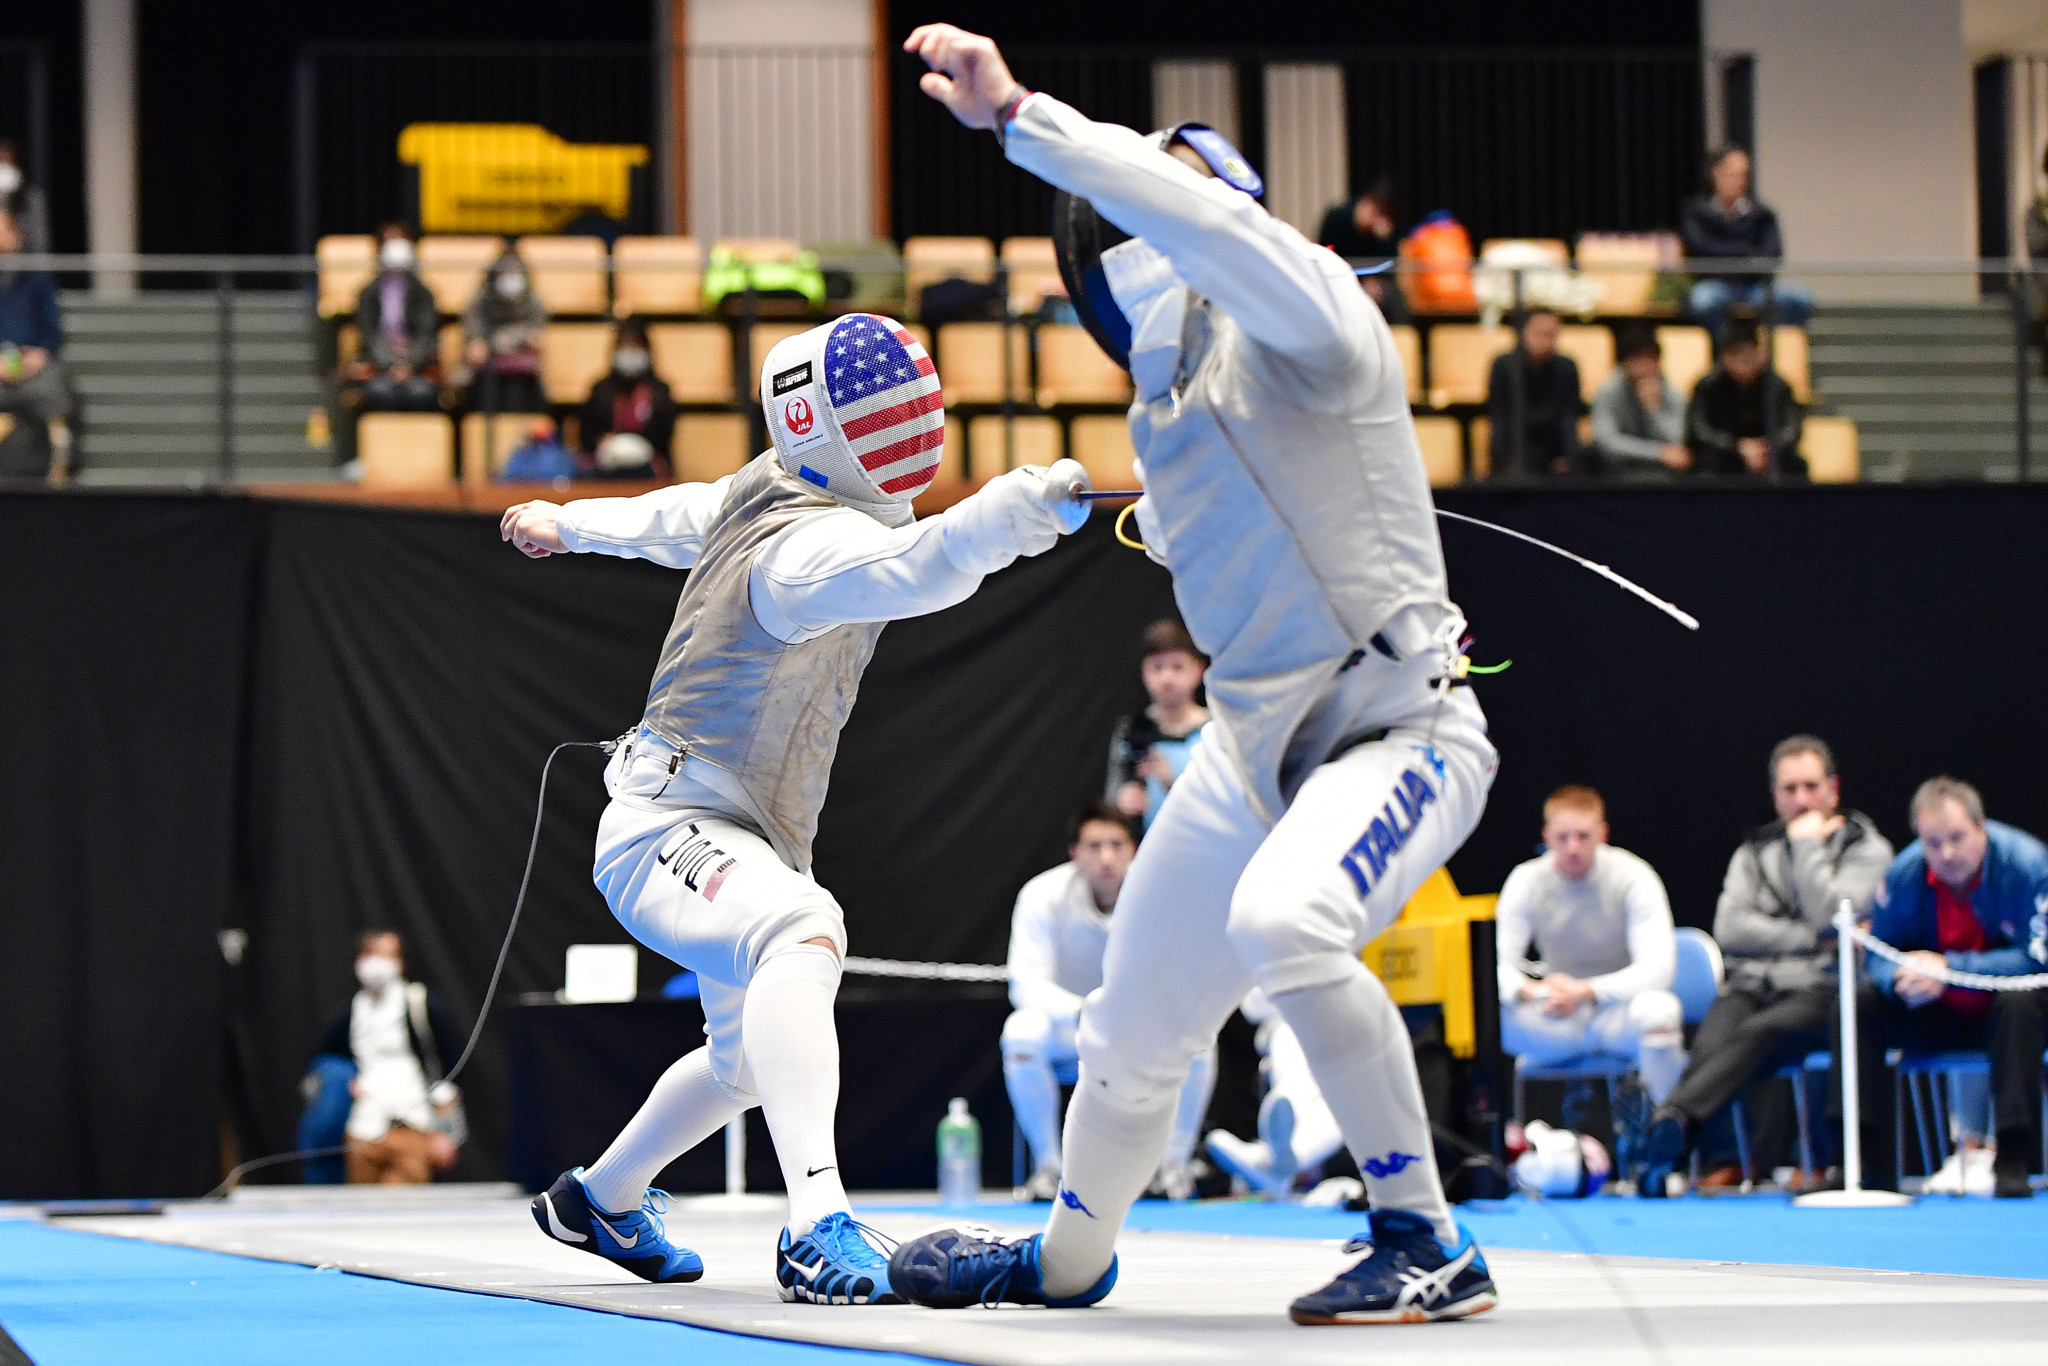 Two US fencers progress from FIE Foil Grand Prix preliminary round in front of home crowd